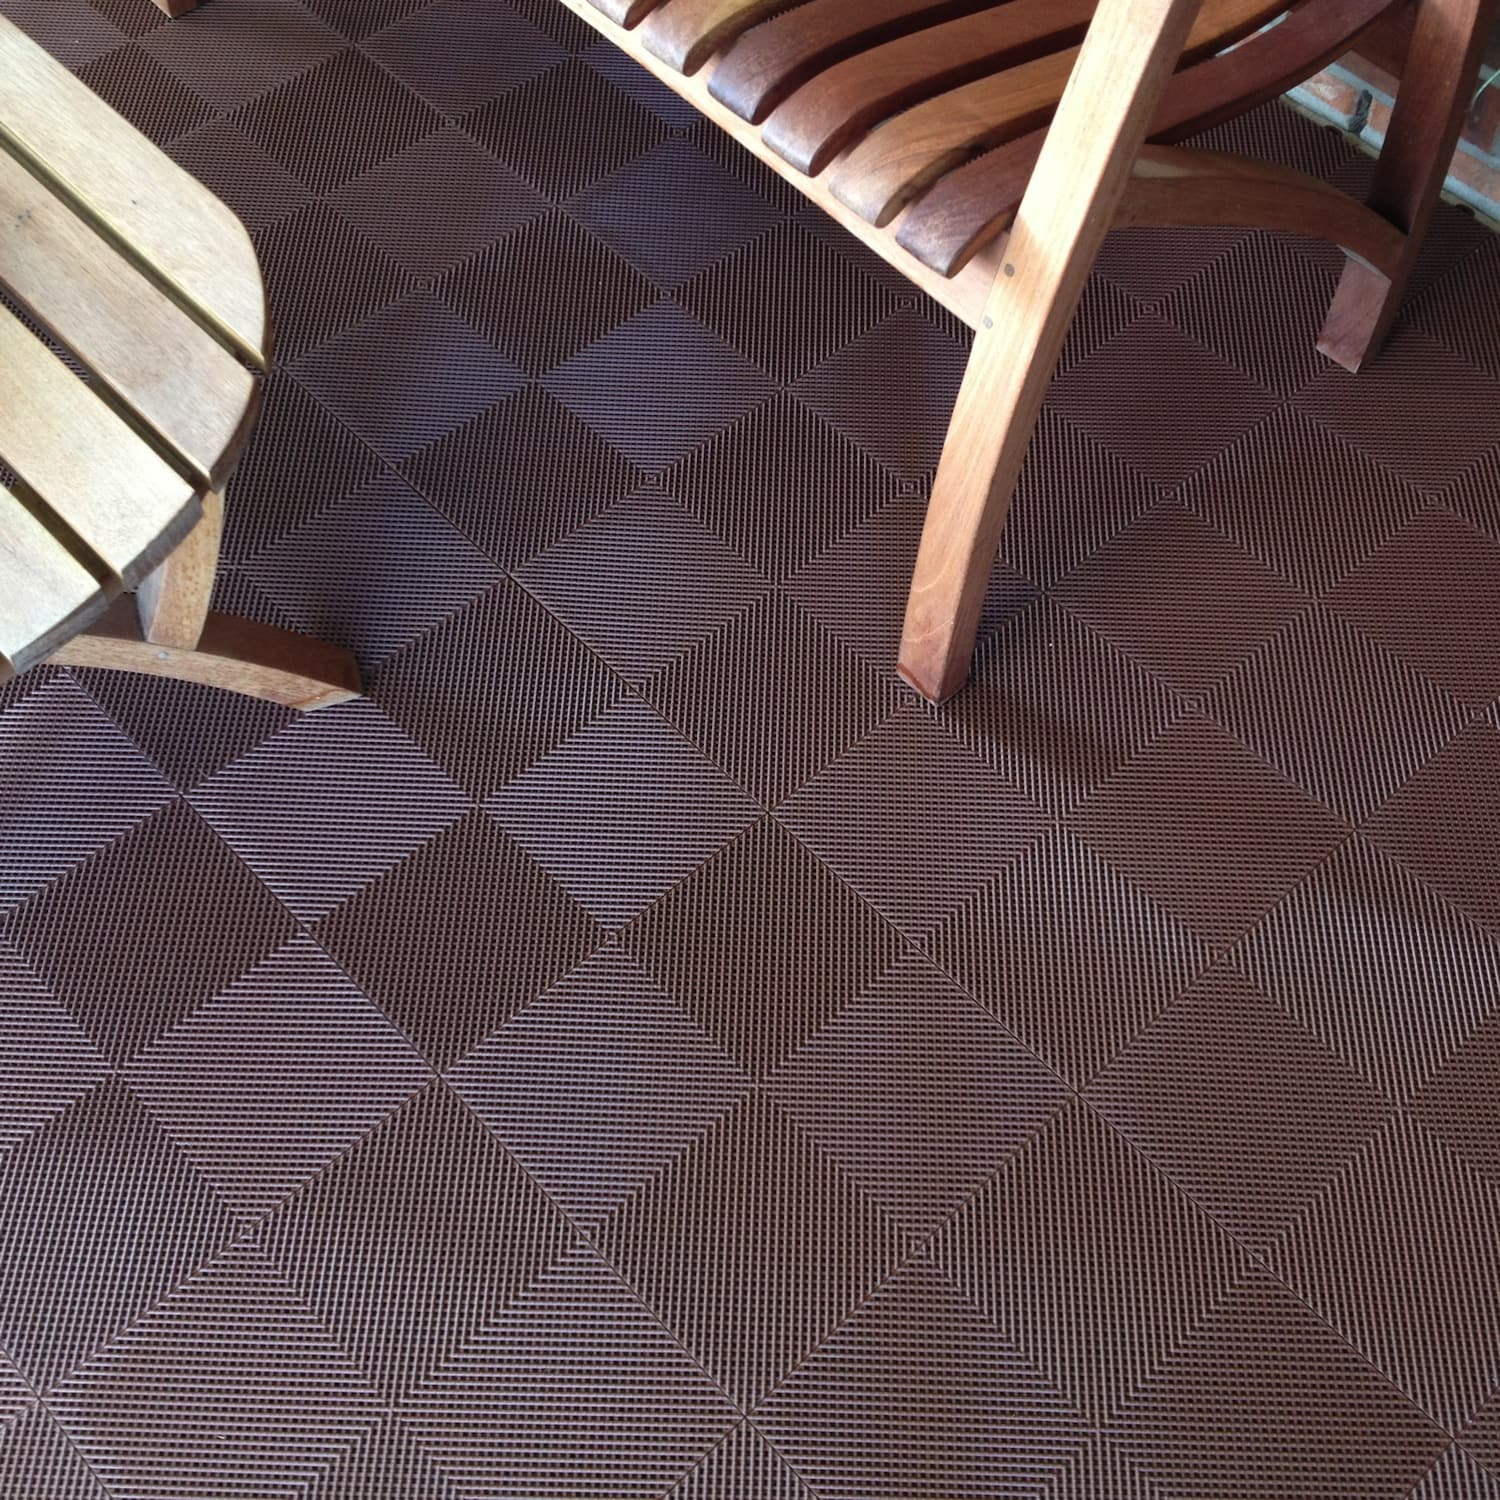 Blocktile Deck And Patio Flooring Interlocking Perforated Tiles Pack Of 30 Free Shipping Today 7549280